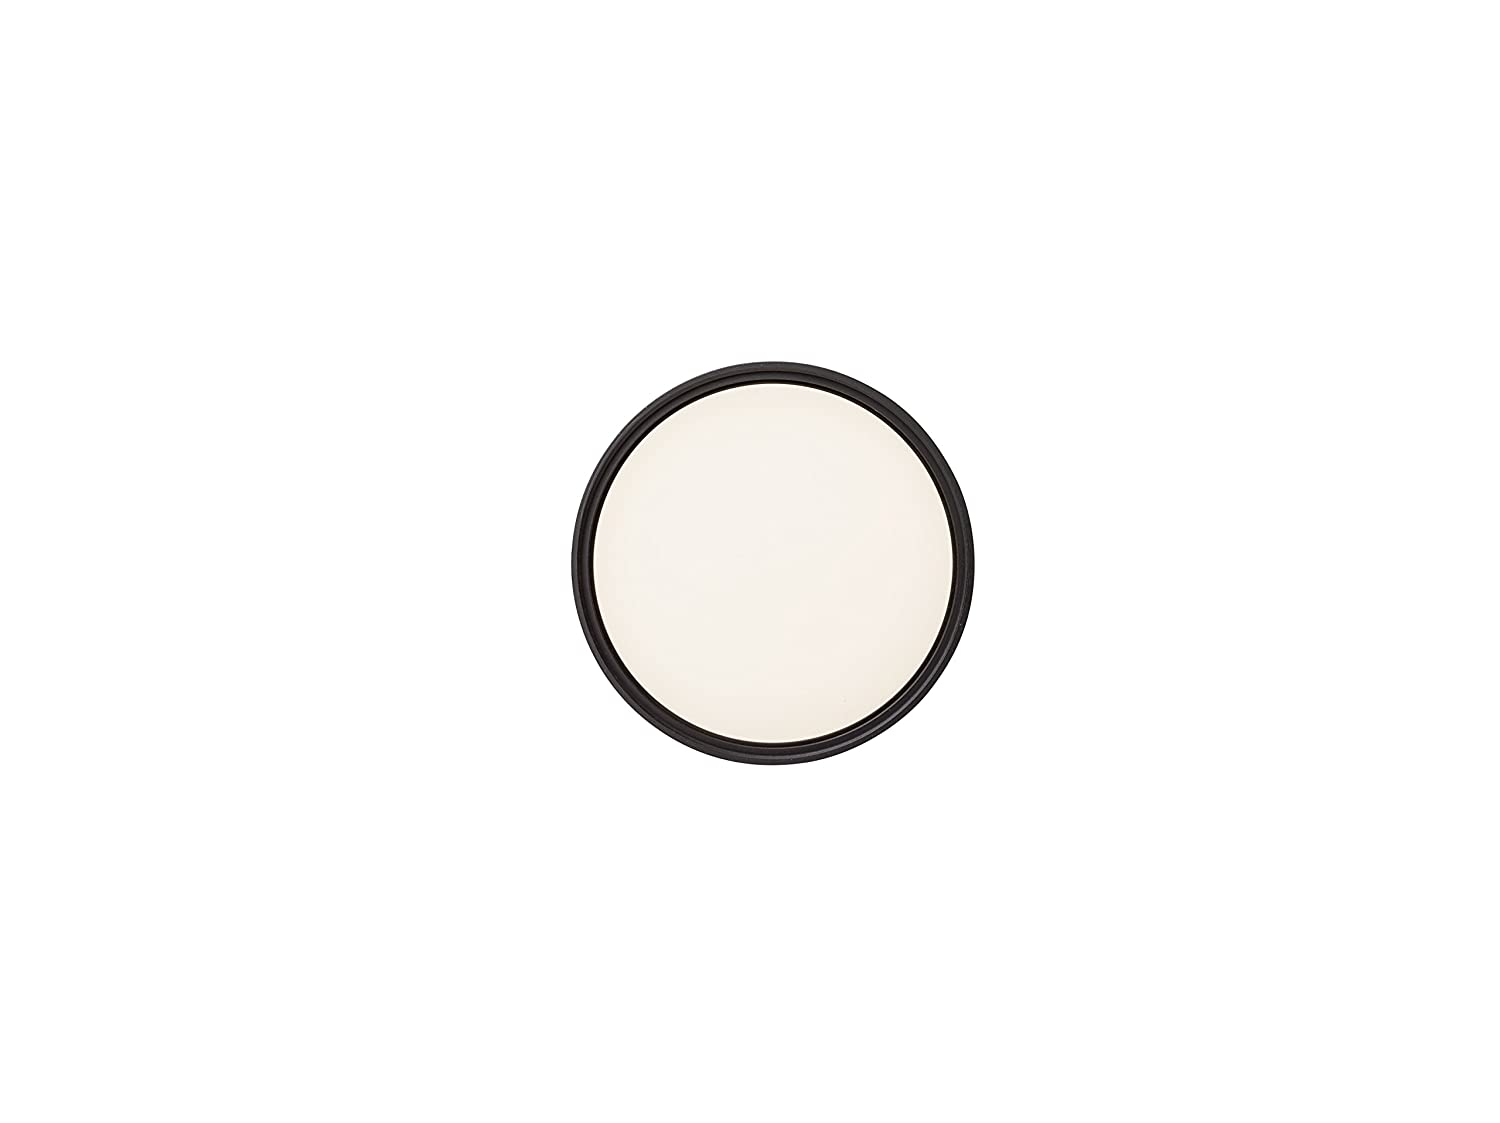 with specialty Schott glass in floating brass ring 703914 Heliopan 39mm KR1.5 1A Skylight SH-PMC Filter